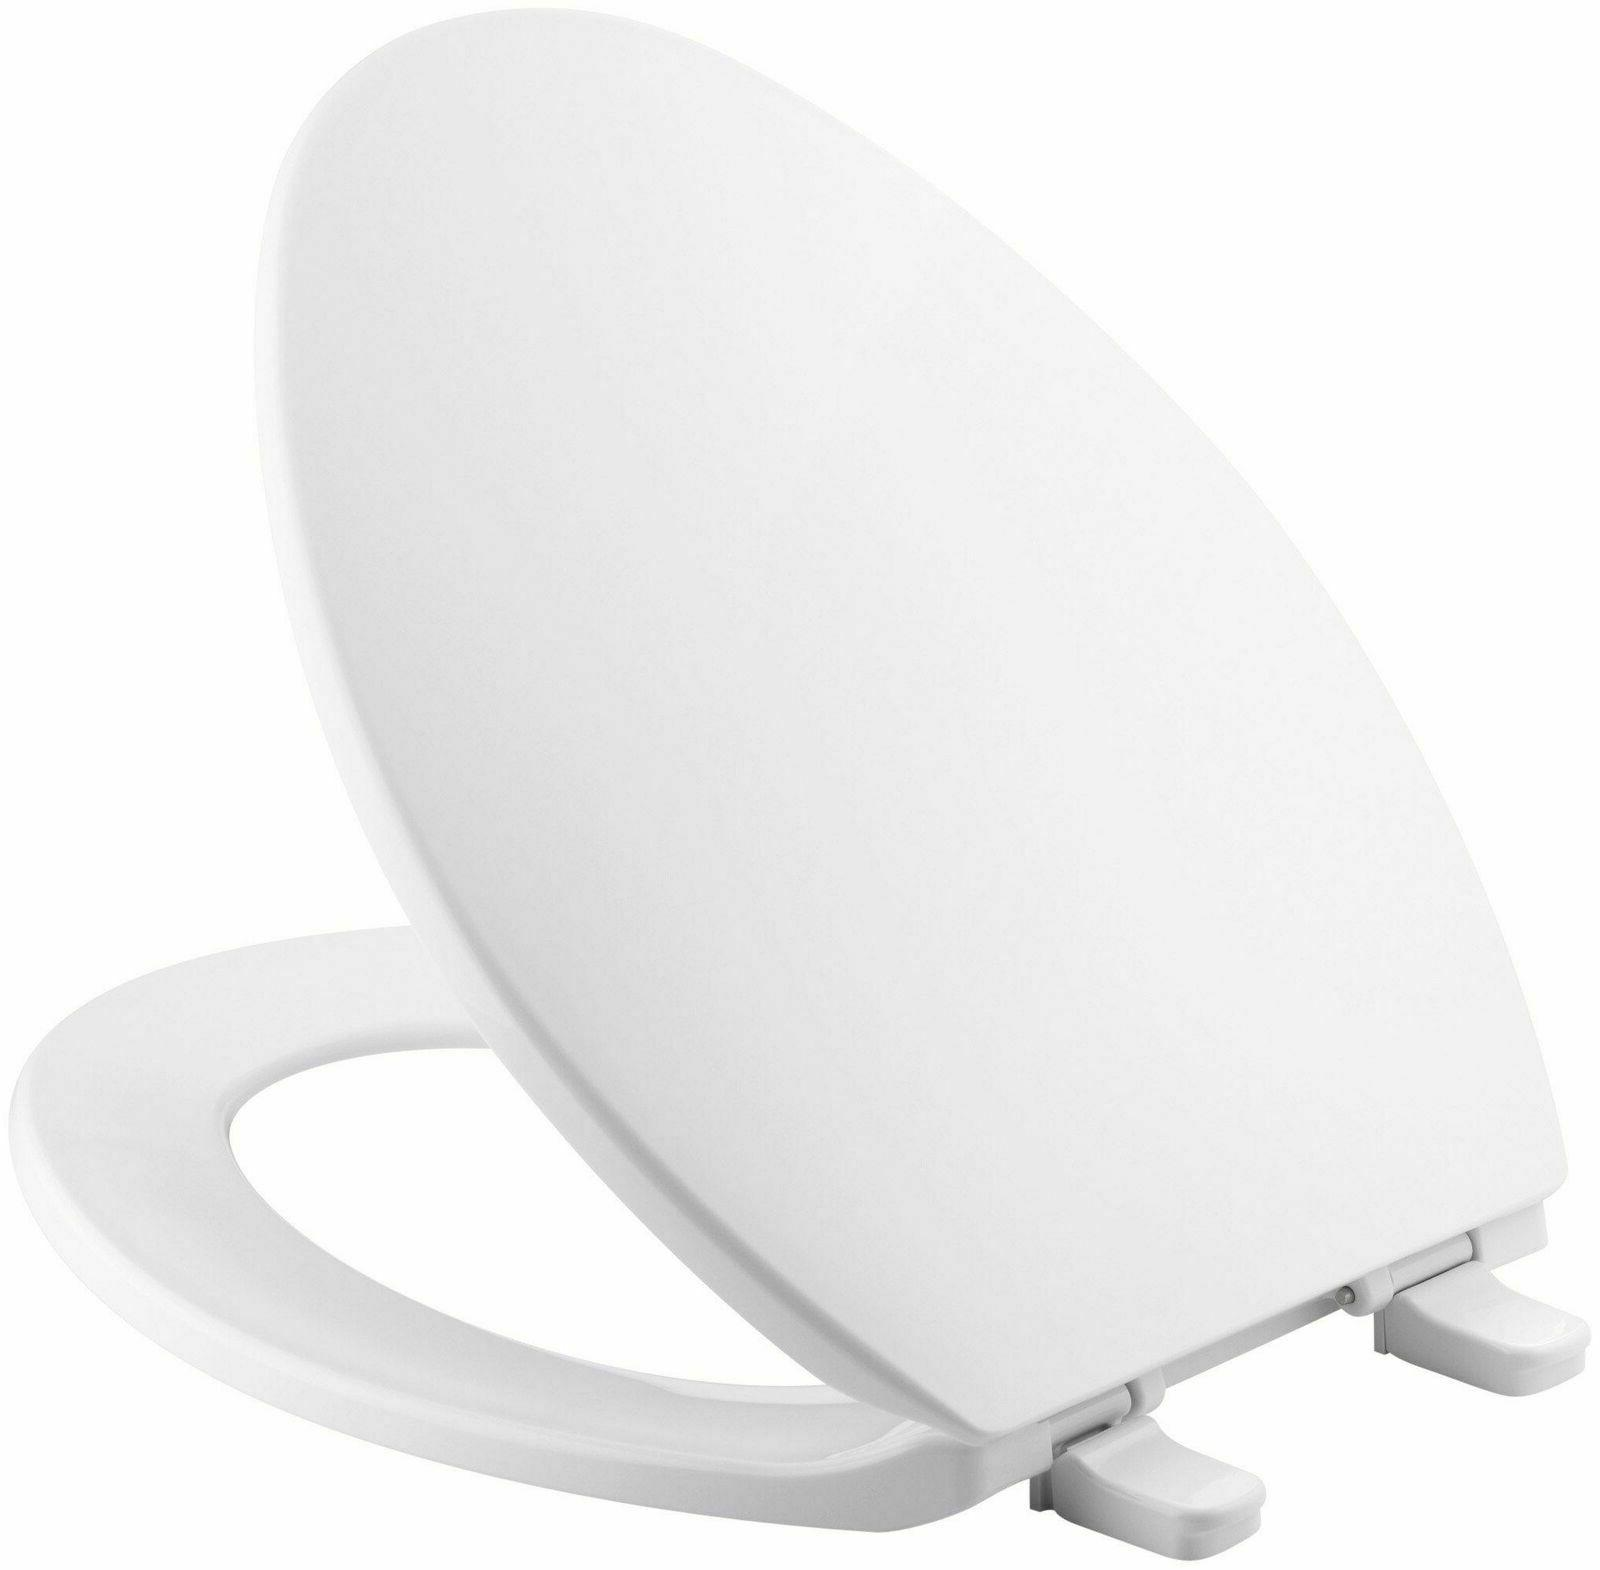 Replacement Elongated Toilet Seat Closed Front White Color M